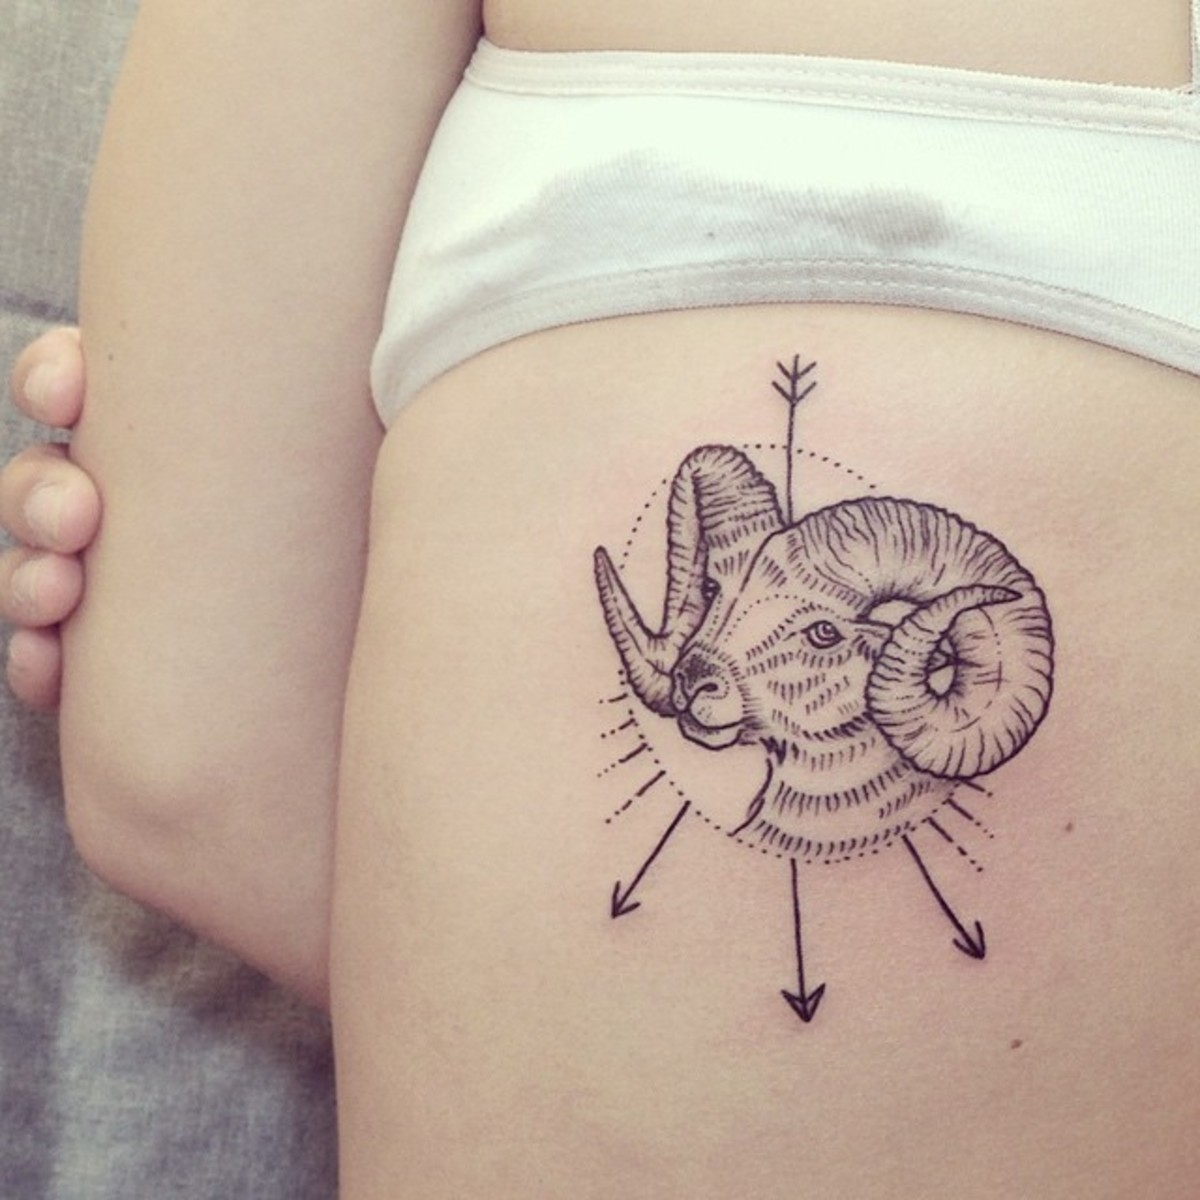 Cute Aries tattoo for girls